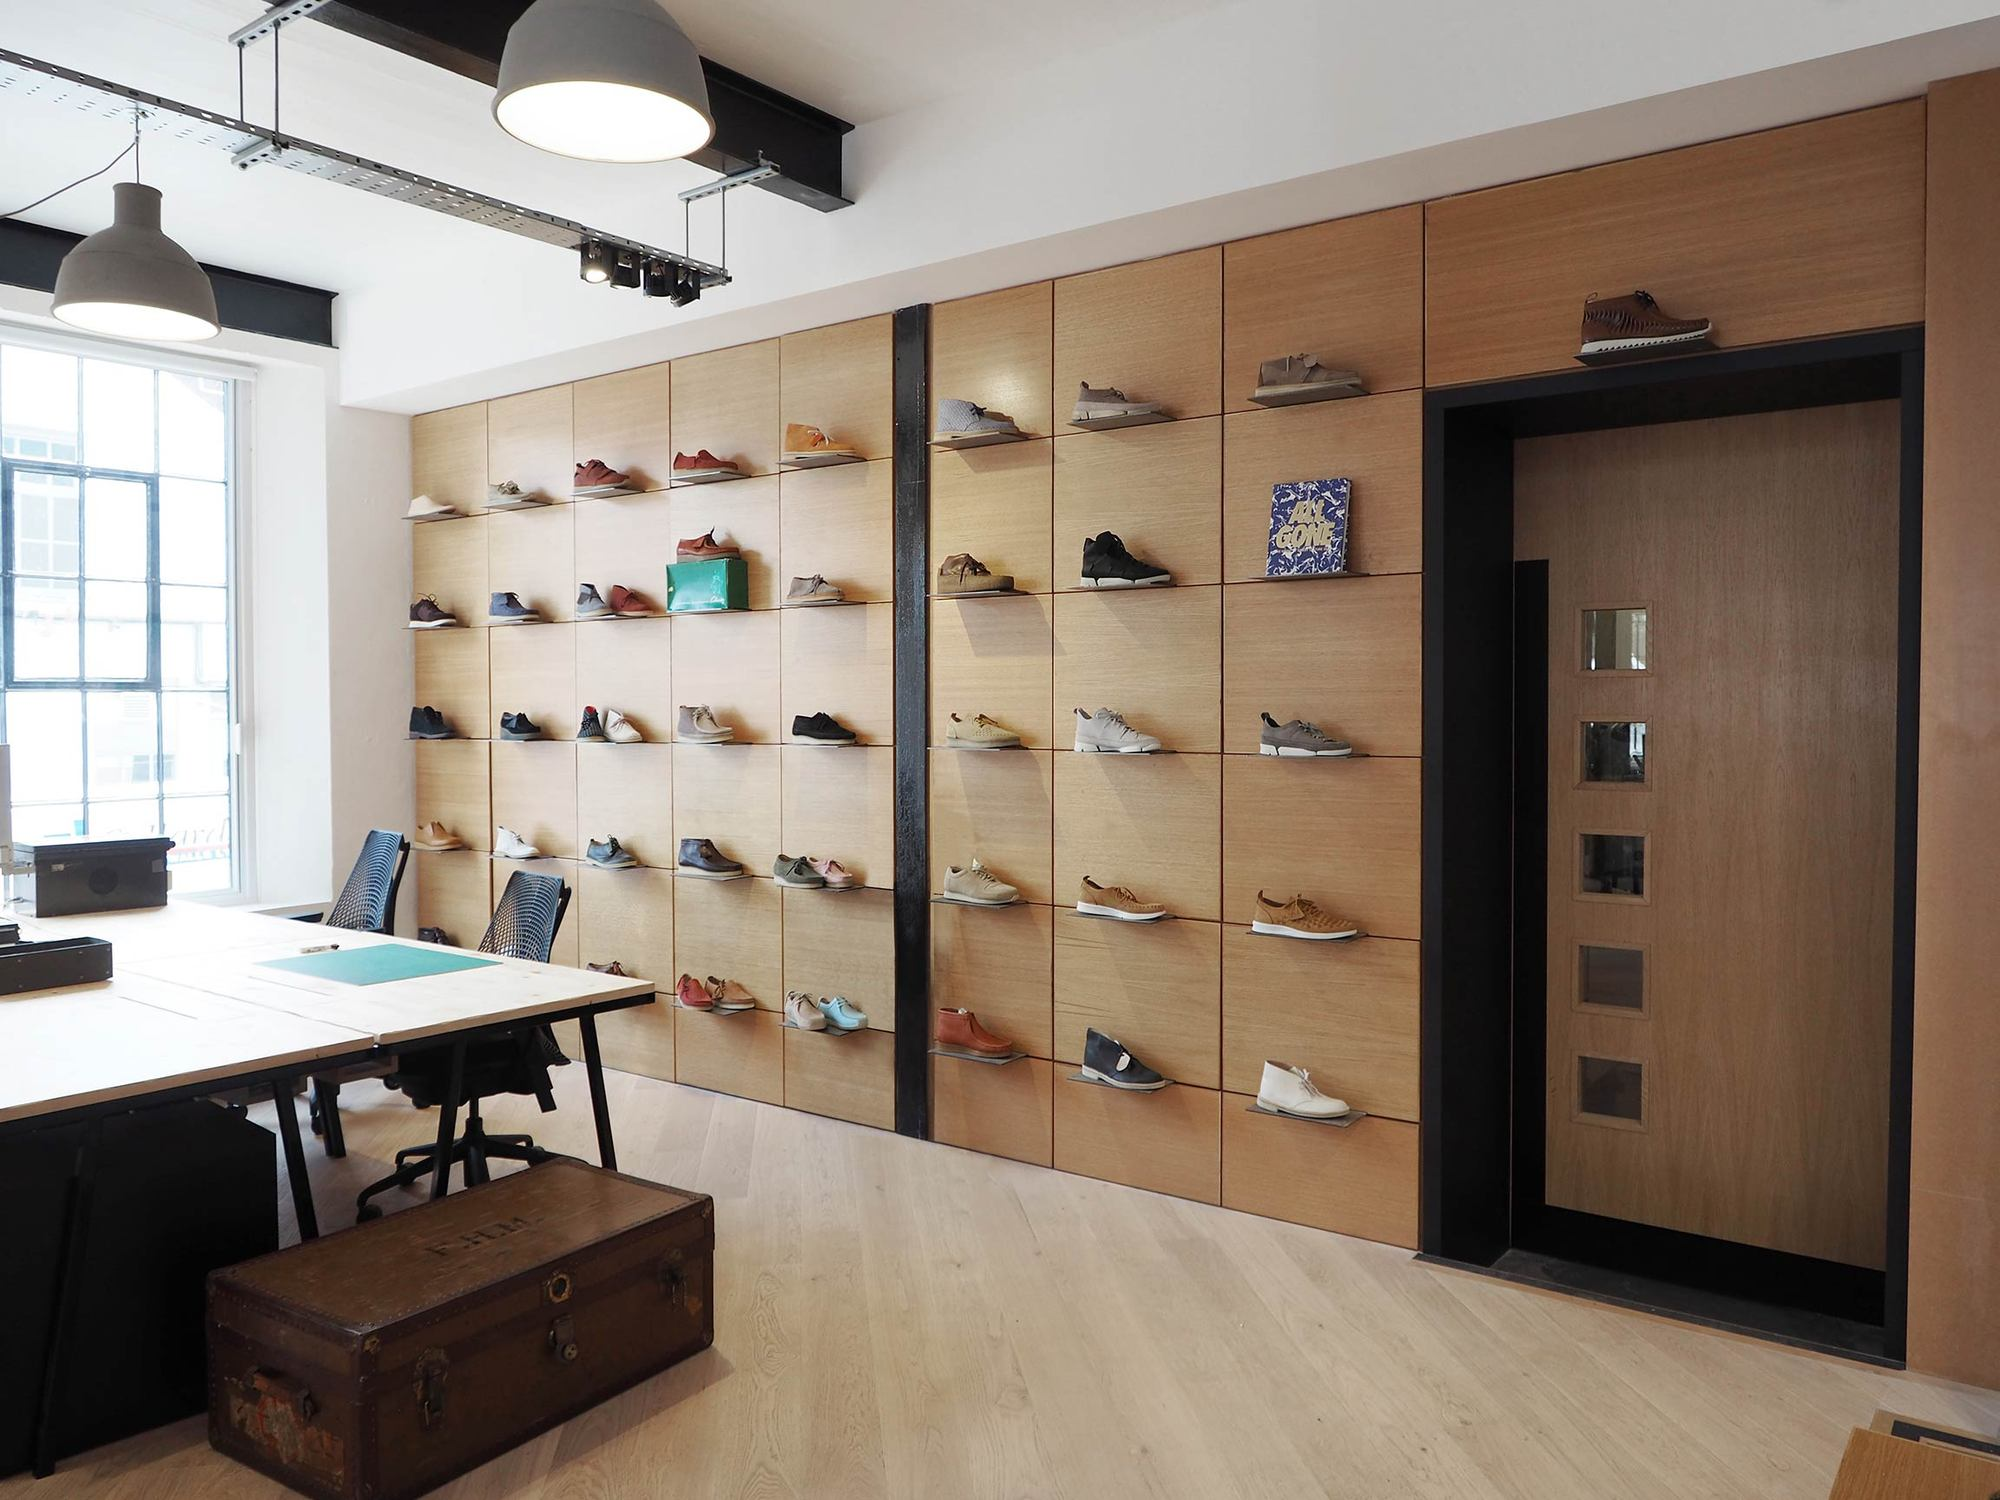 Galeria de est dio de design clarks originals arro for Product design studio